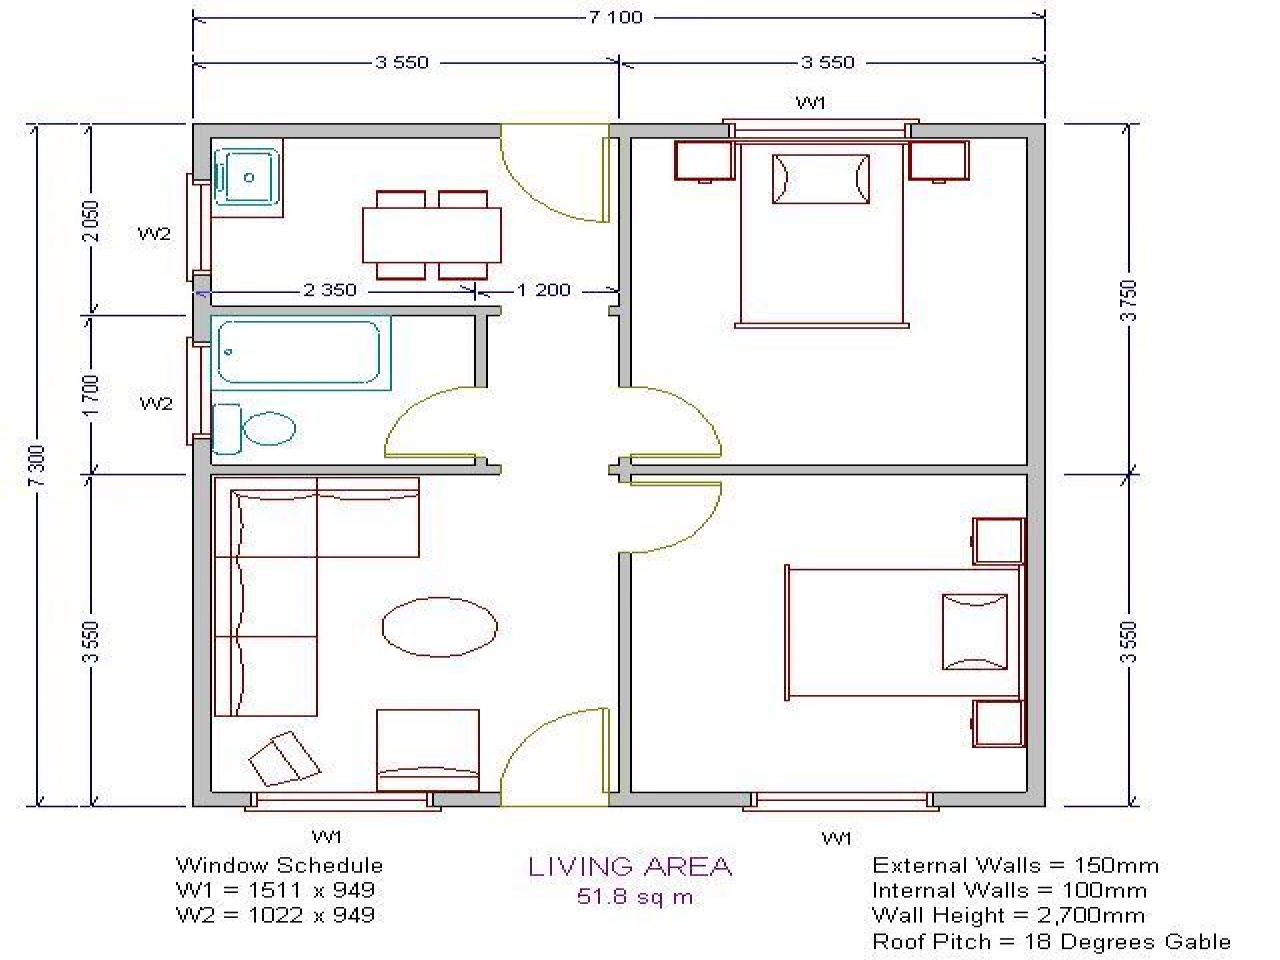 4 Bedroom Houses For Rent Section 8 Simple Low Cost House Plans Low Cost Houses For Rent Plan